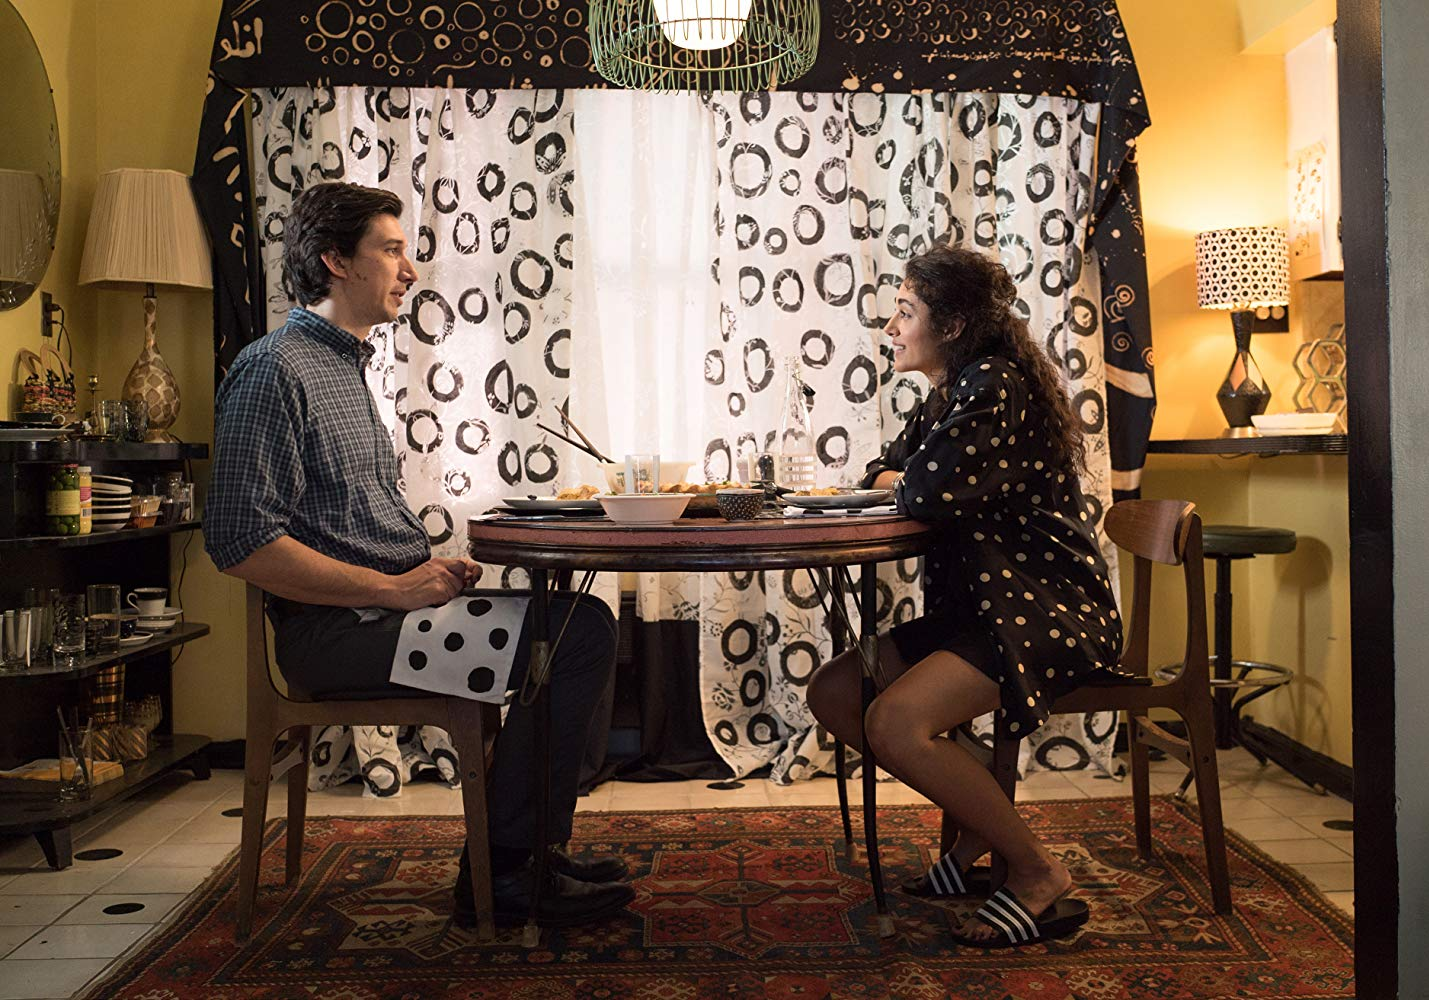 There is a story in those polka dots and circles. (Credit: IMDB)